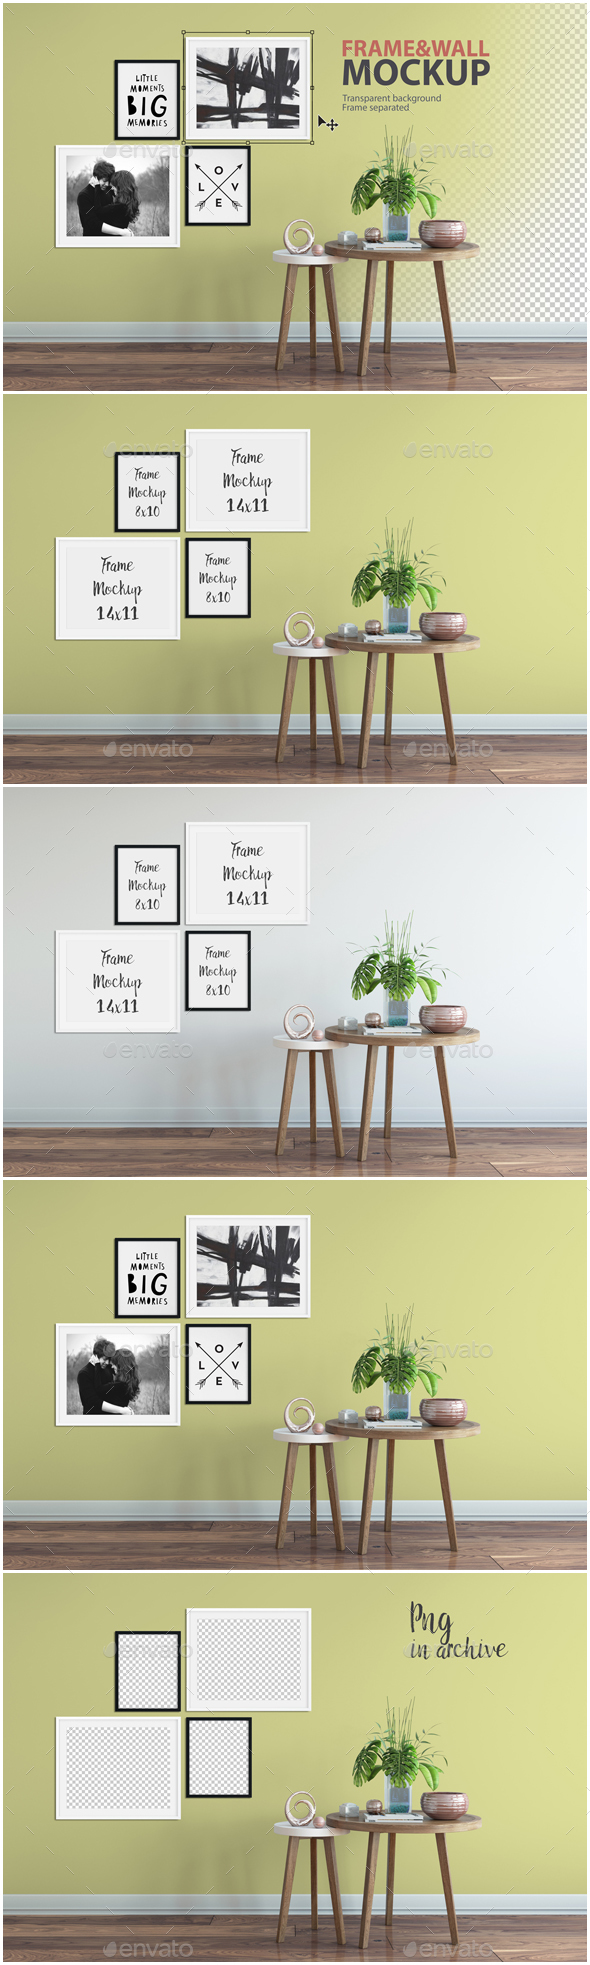 Frame & Wall Mockup 03 - Product Mock-Ups Graphics